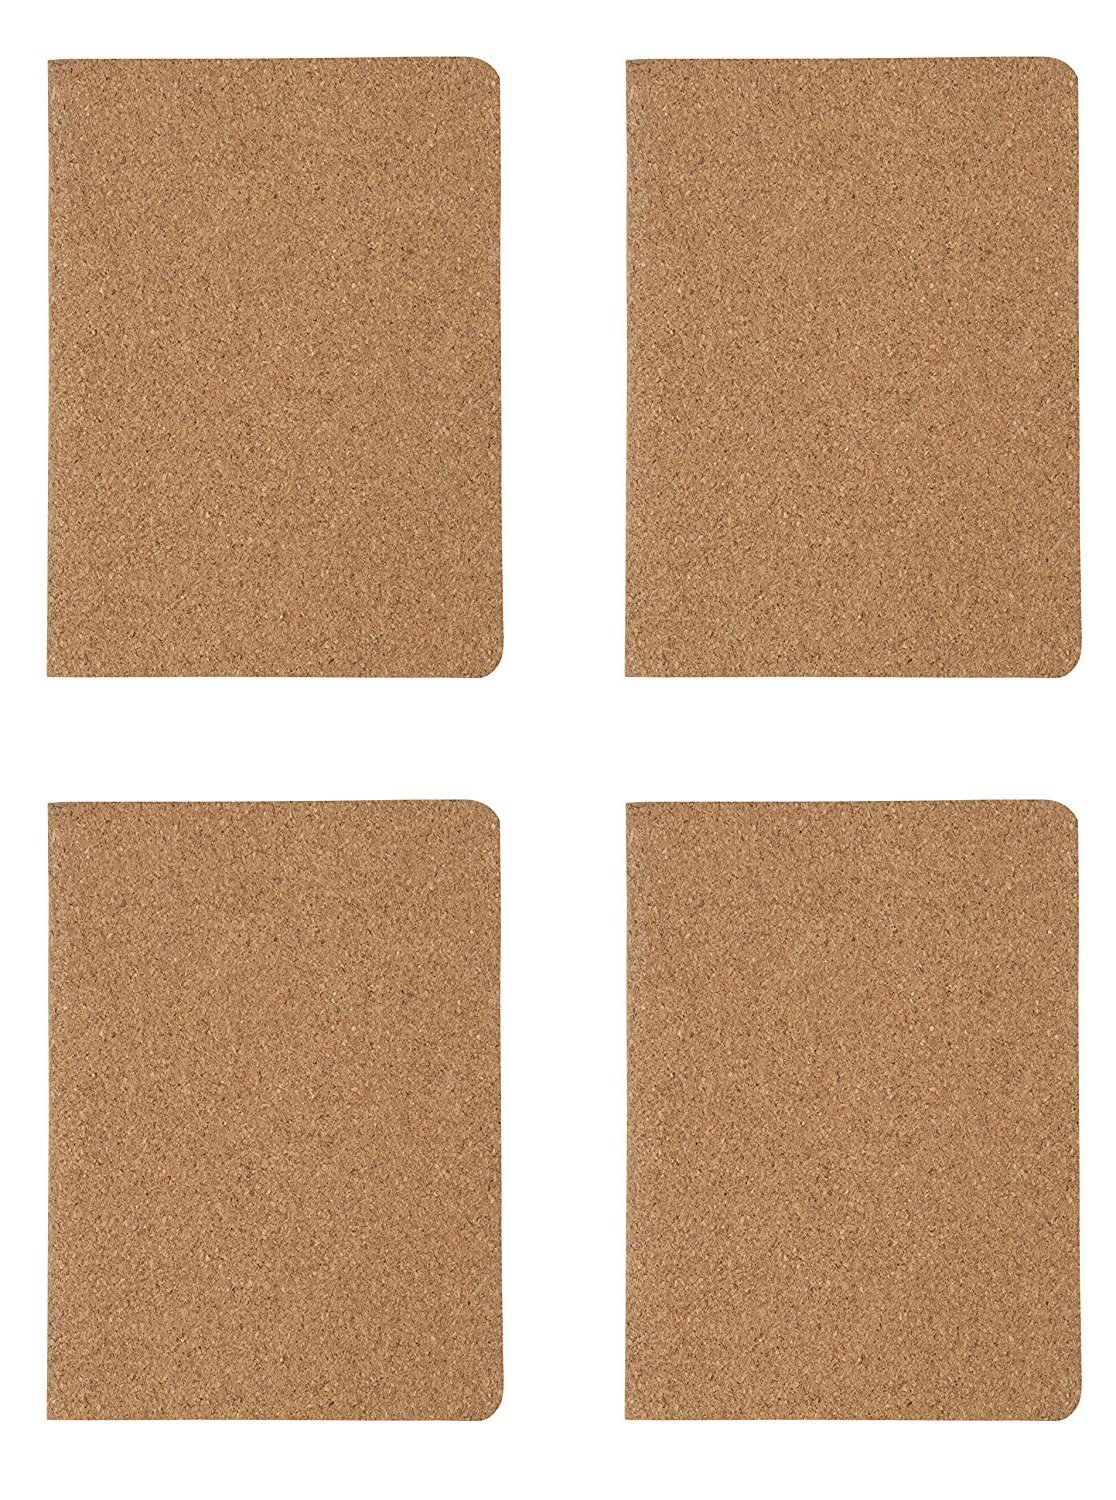 Pocket Notebooks with Cork Cover- 4-Pack Eco-Friendly Lined Soft Cover Notebooks, Travel Journals, Diary, Notepad for Office, School, Students, 40 Sheets, 5.9 x 4.25 inches